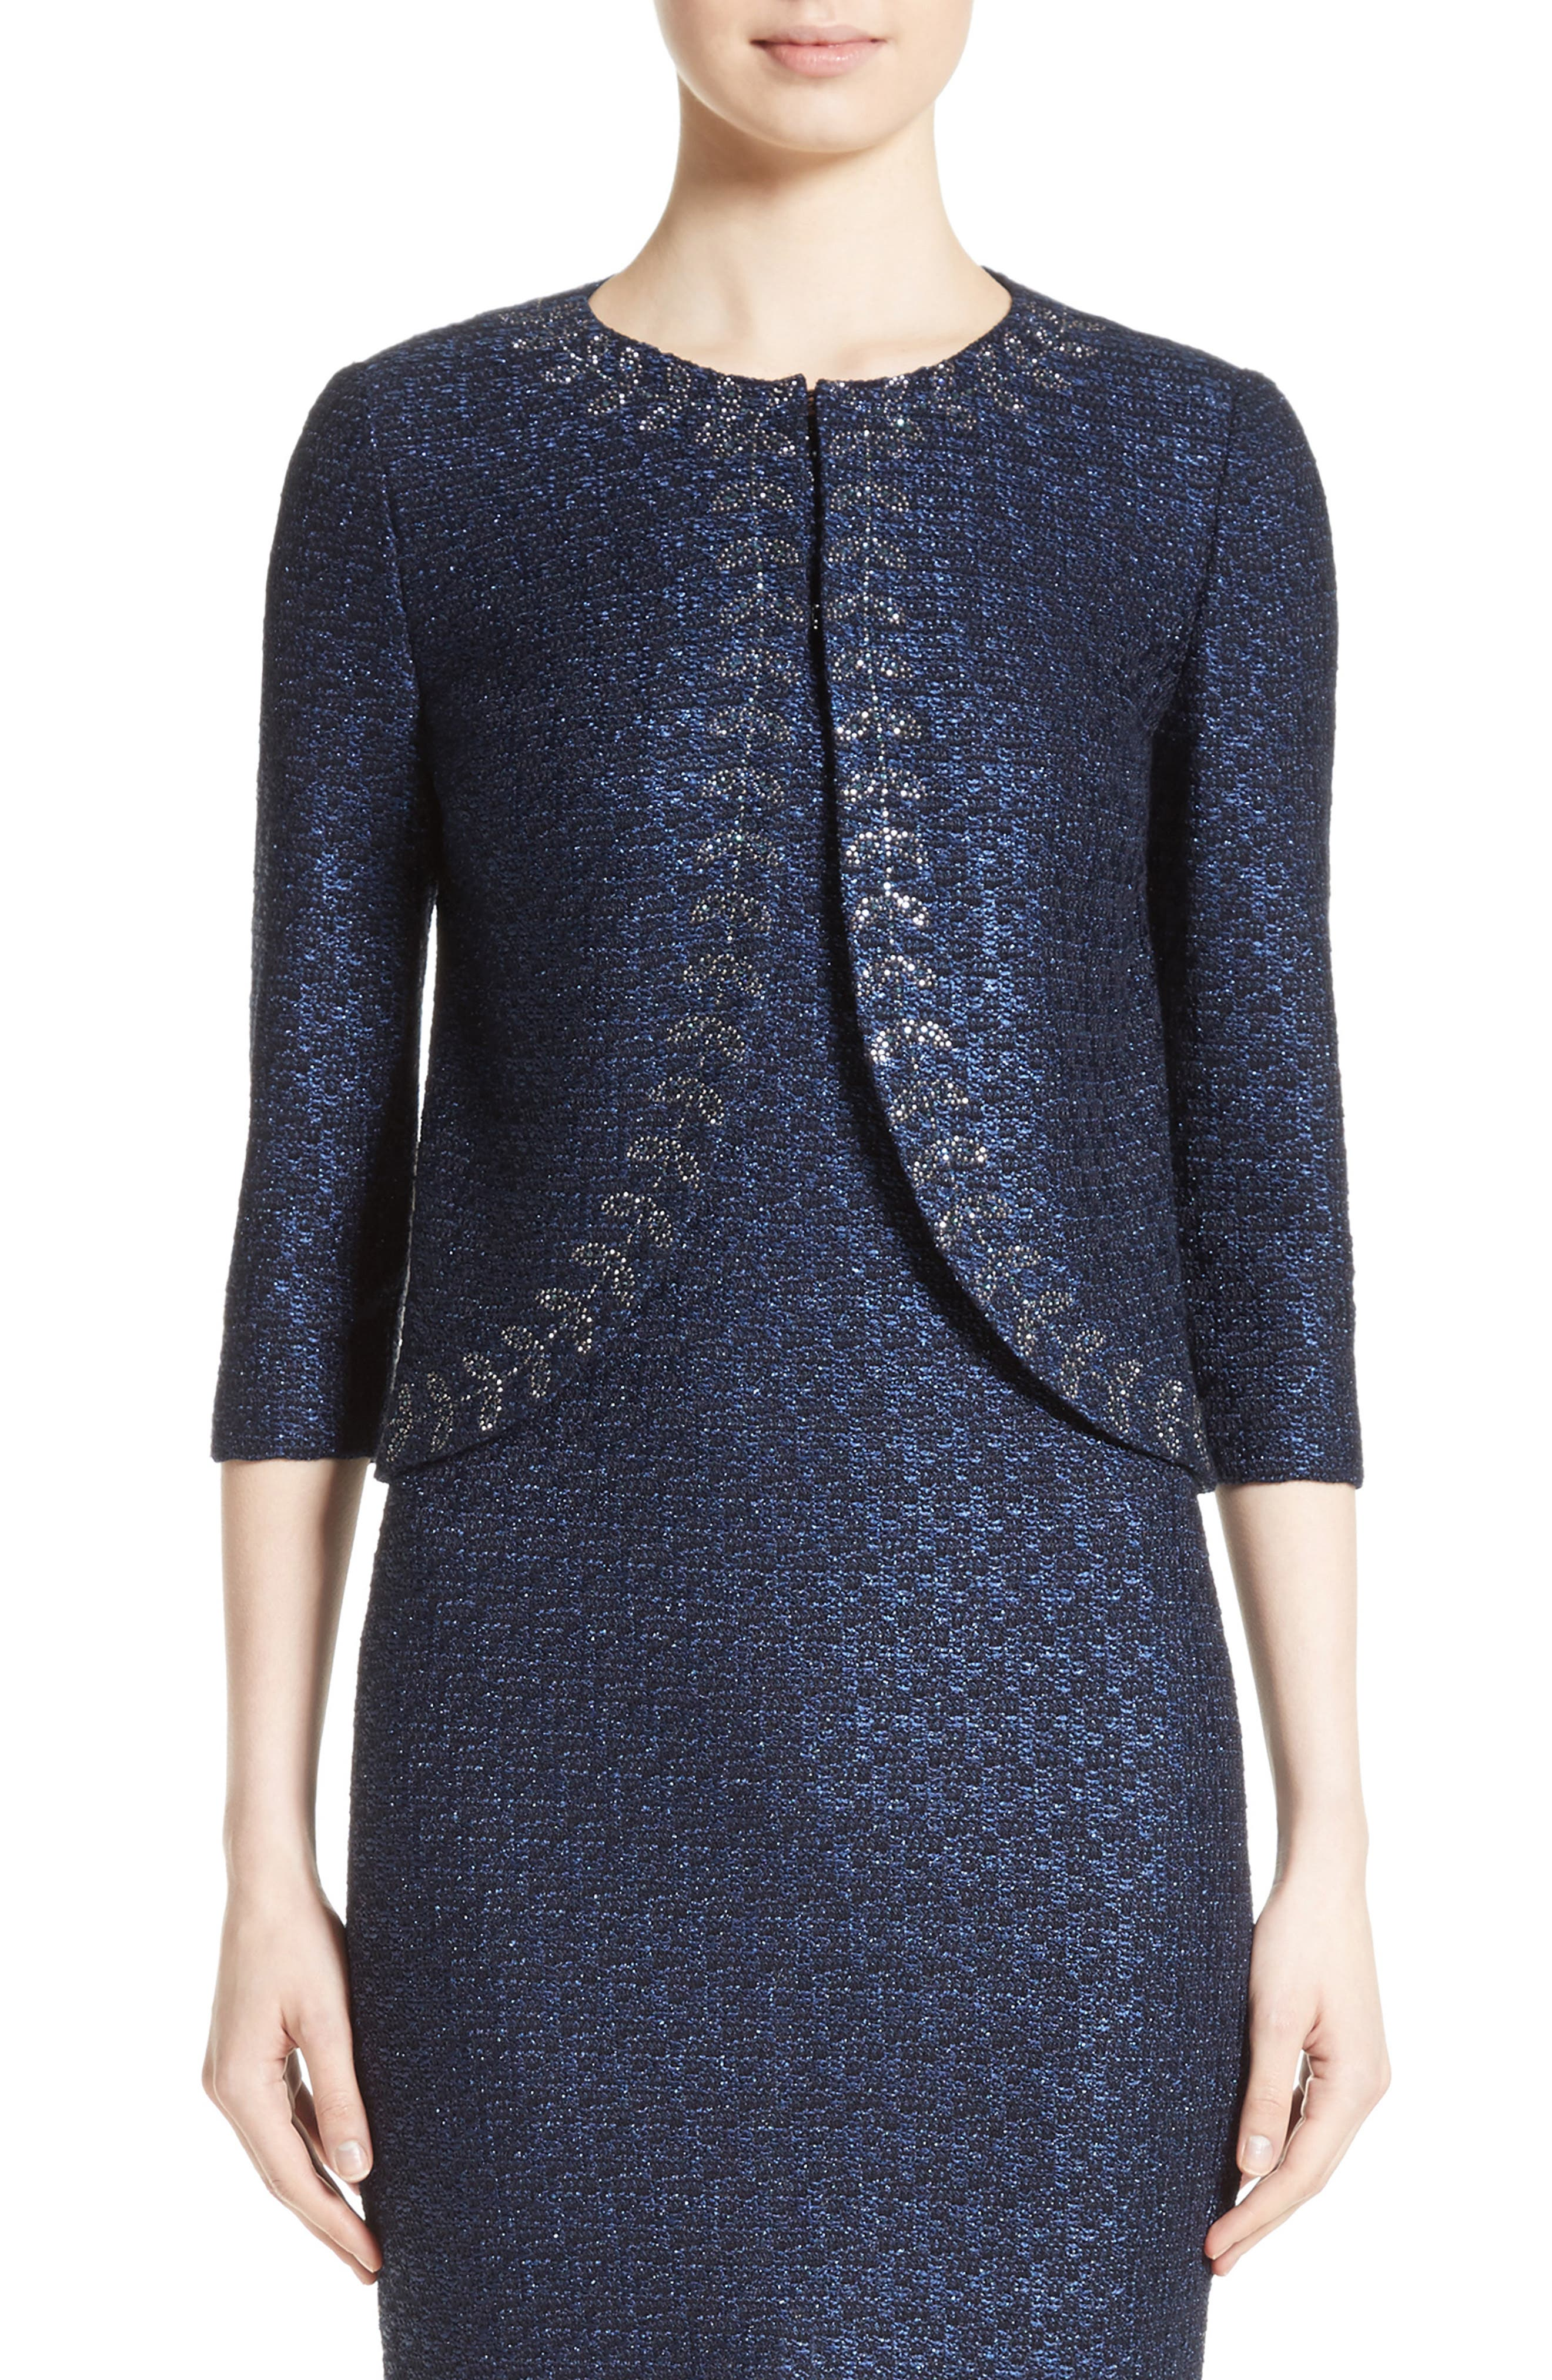 Main Image - St. John Collection Jiya Sparkle Knit Jacket